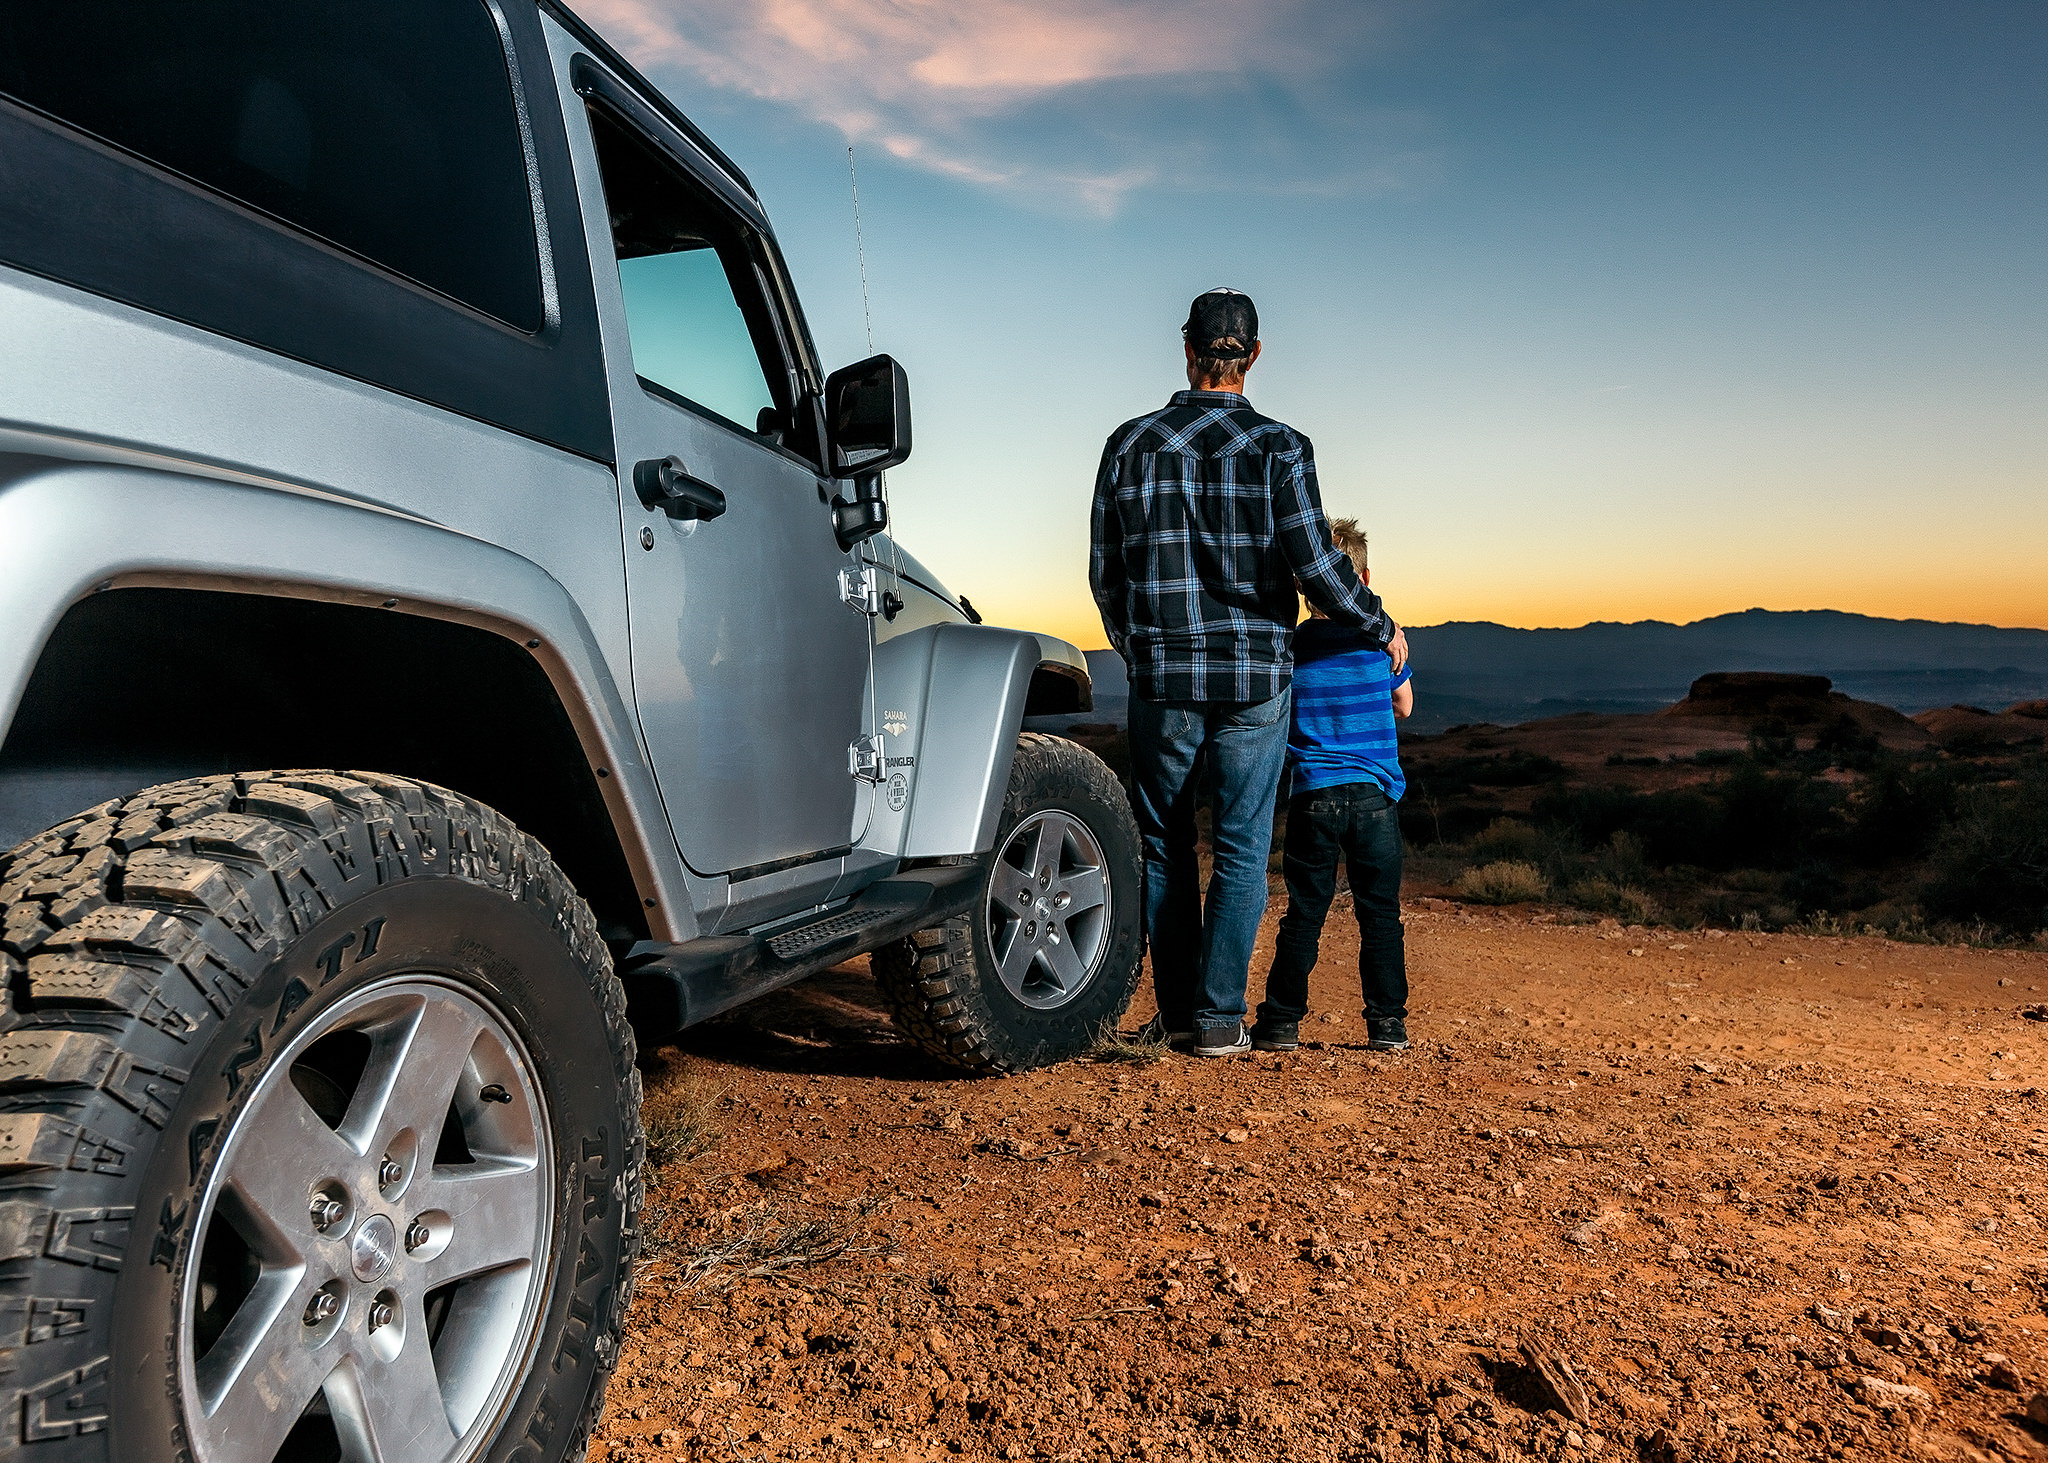 father and son watch sunset by jeep